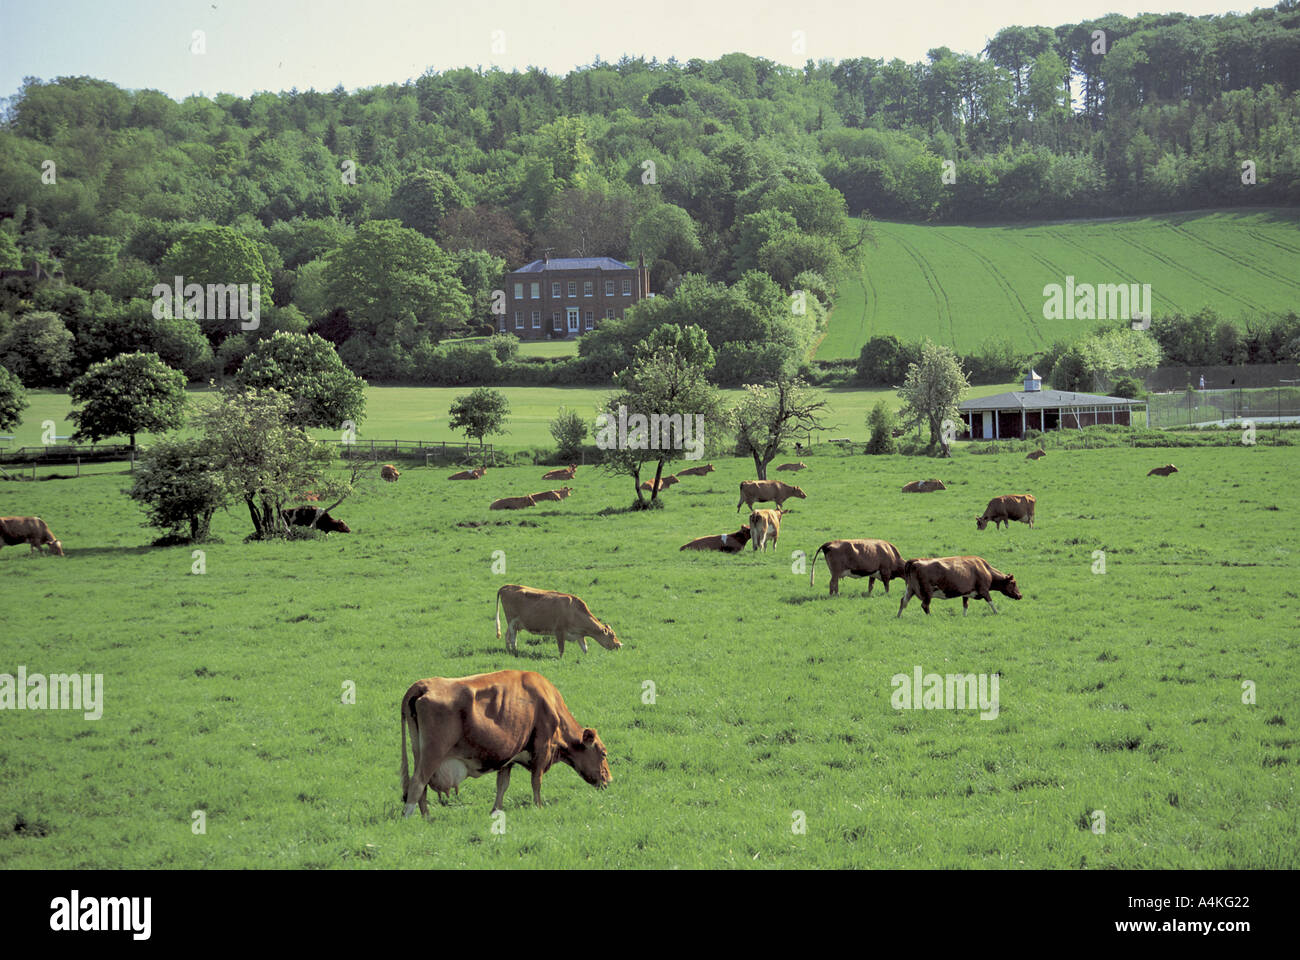 Guernsey cows in field at Hambleden - Stock Image